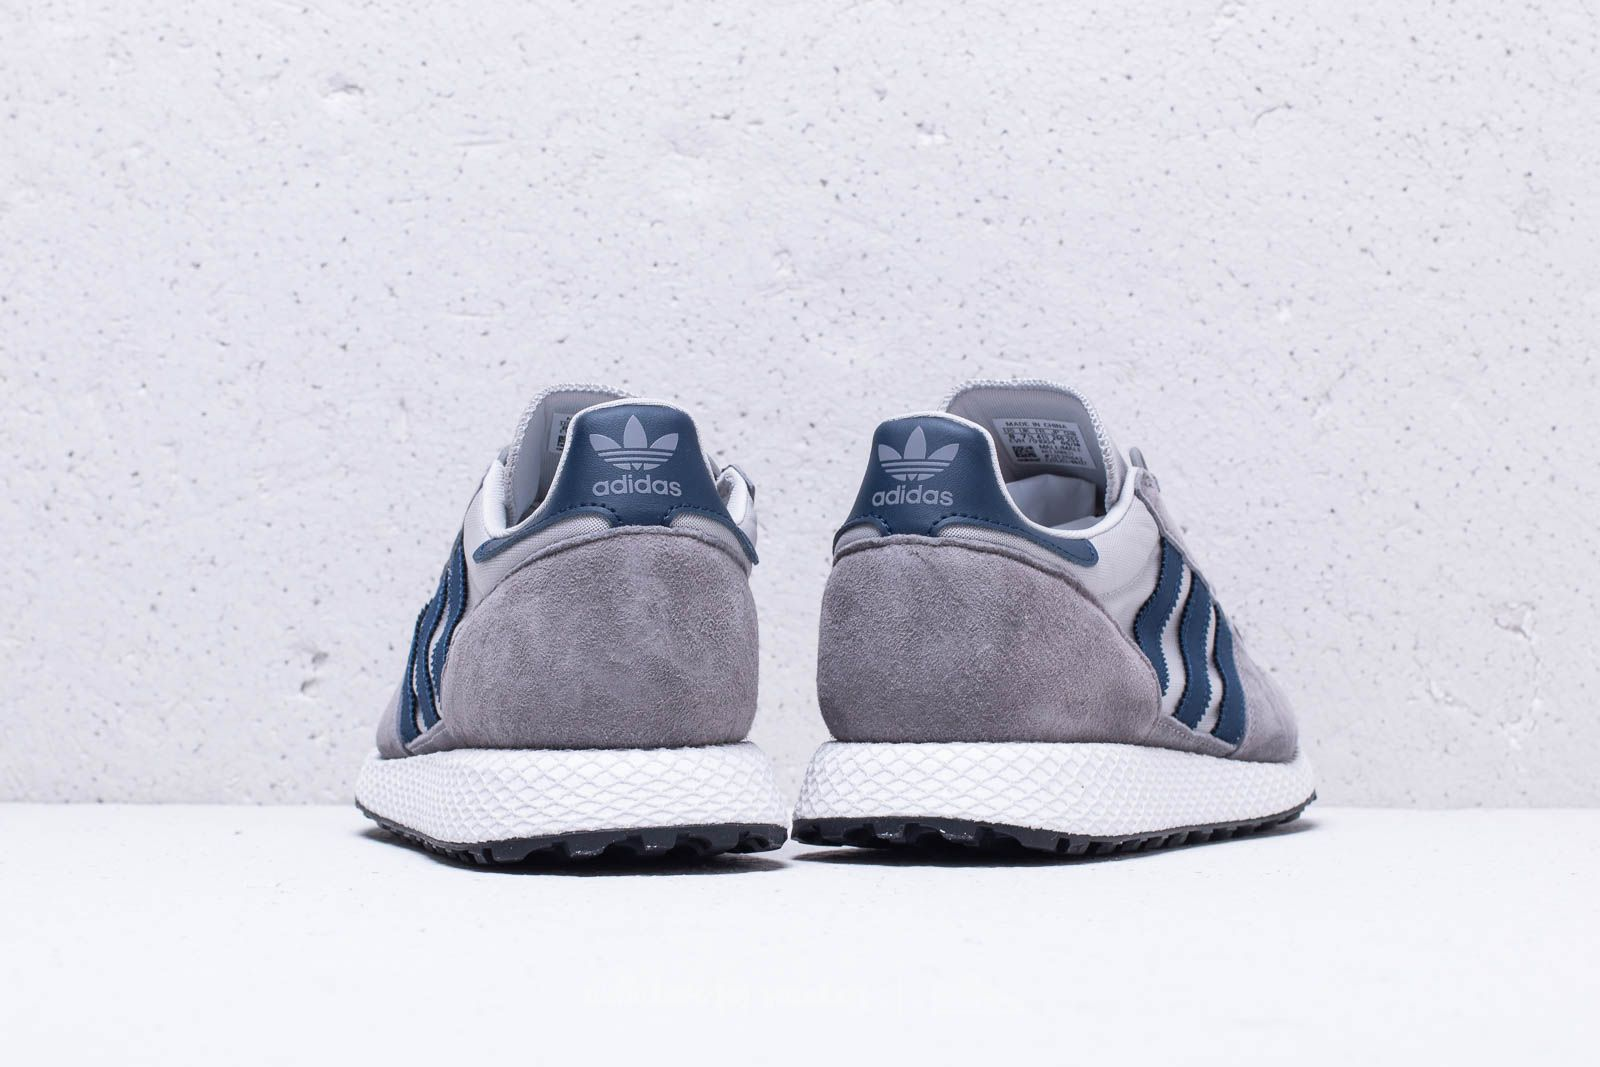 Men's shoes adidas Forest Grove Grey